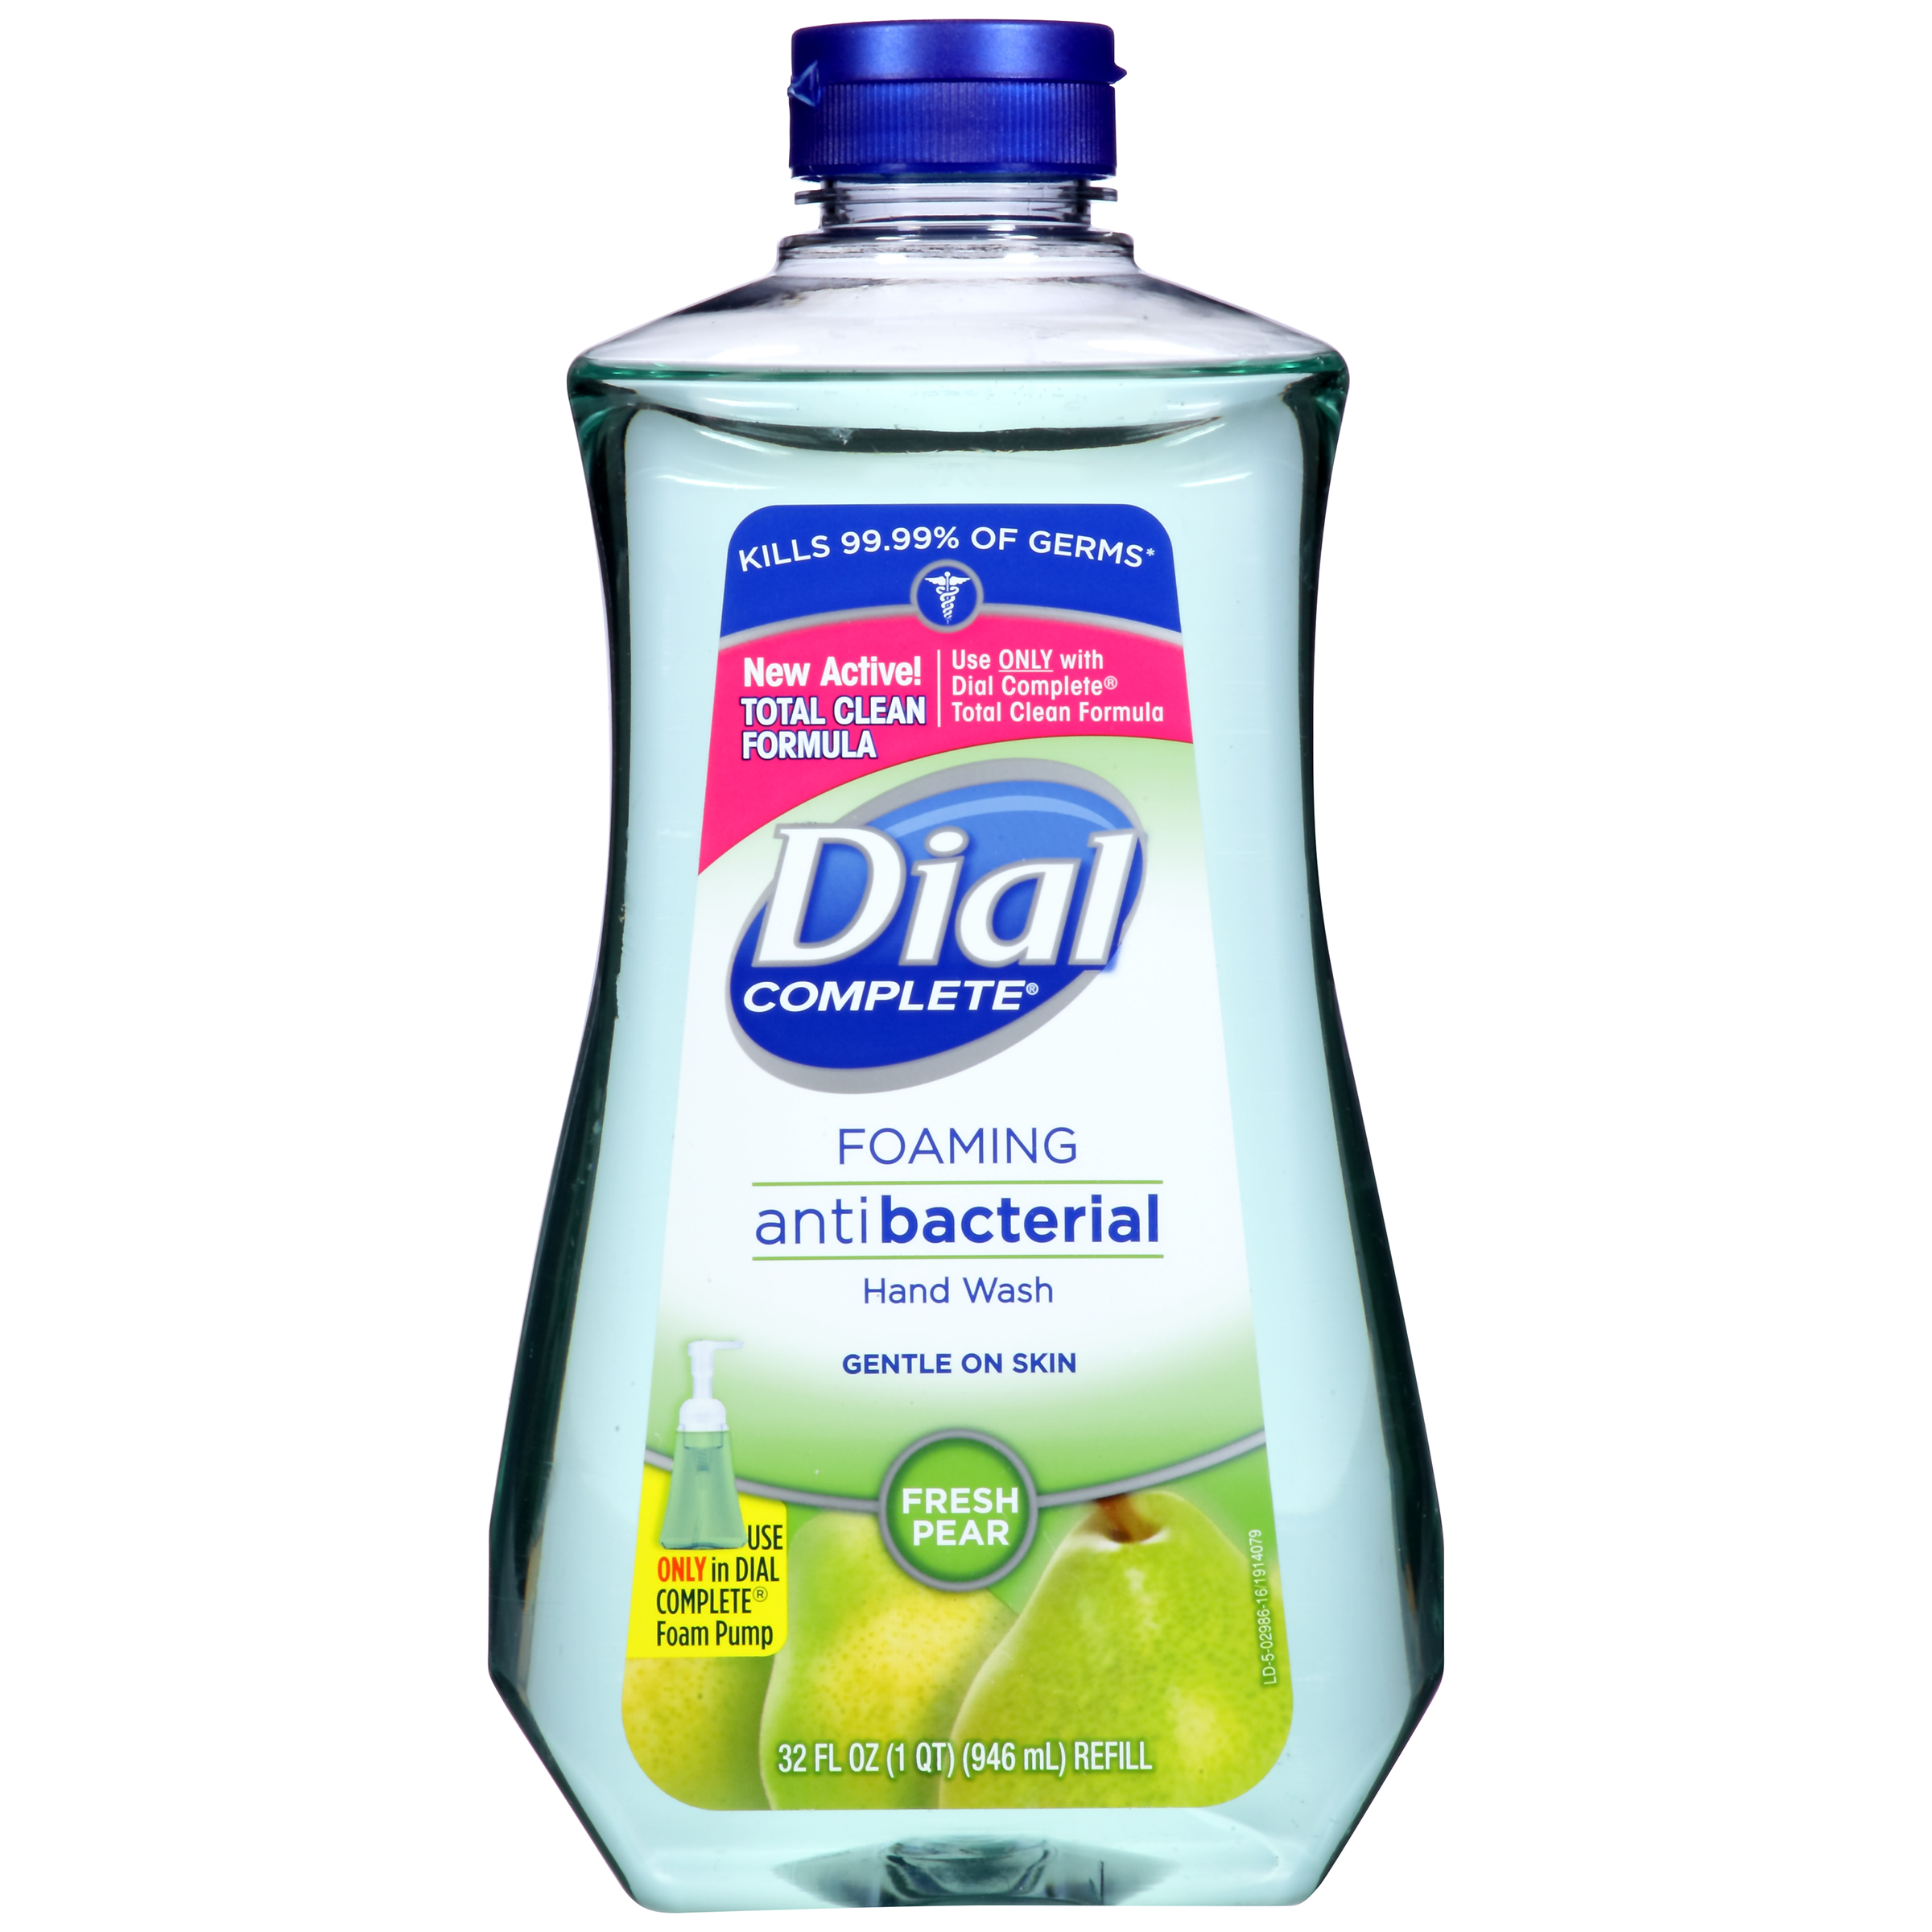 (2 pack) Dial Complete Antibacterial Foaming Hand Wash Refill, Fresh Pear, 32 Oz